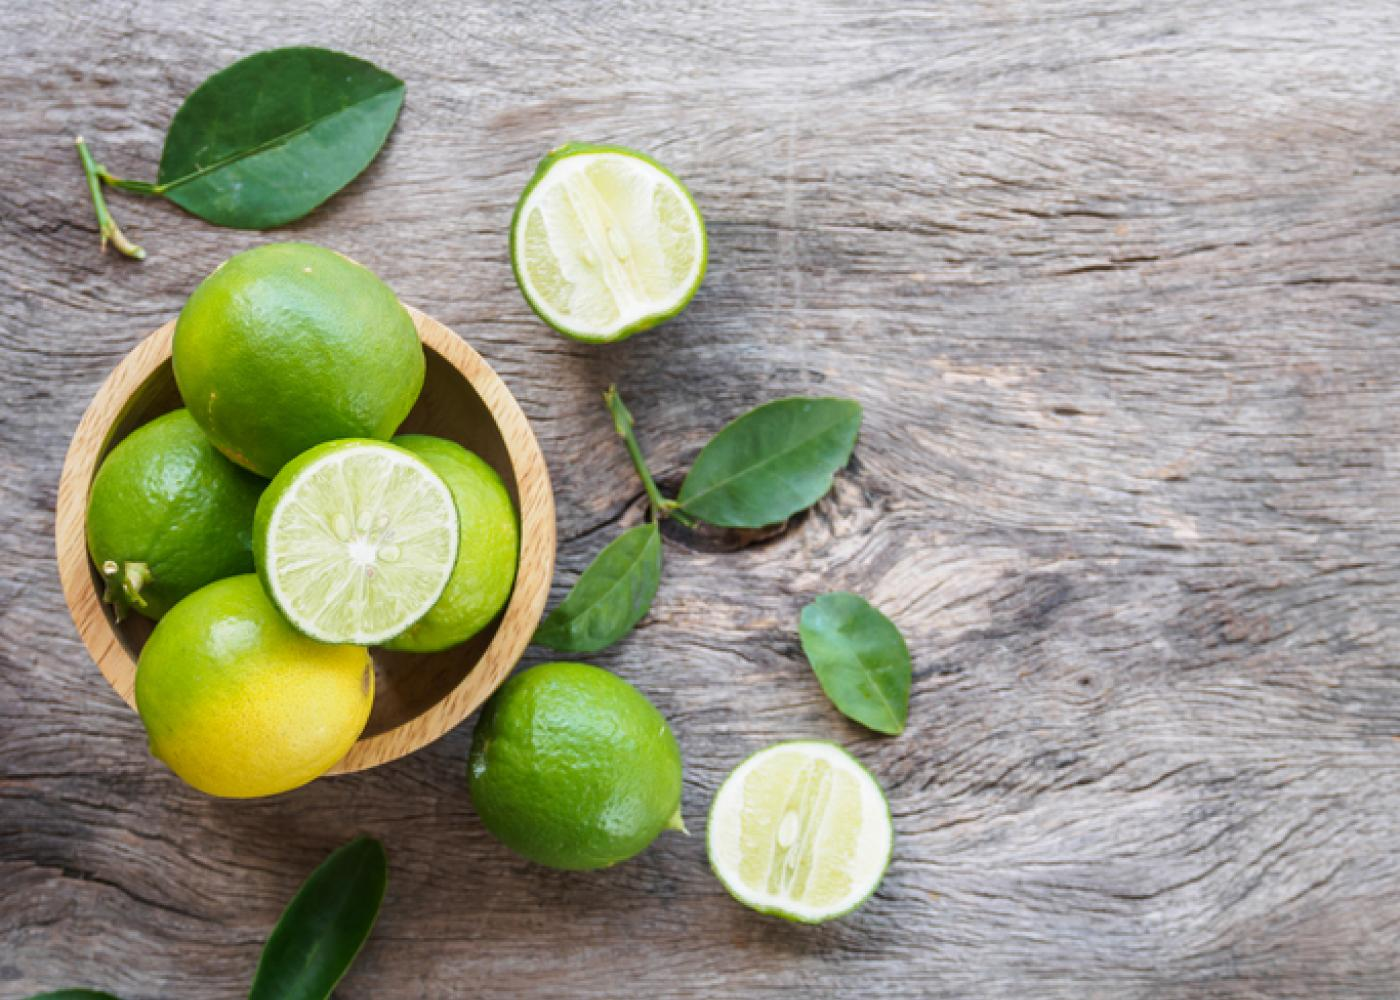 whole limes and cut limes in a basket on a table